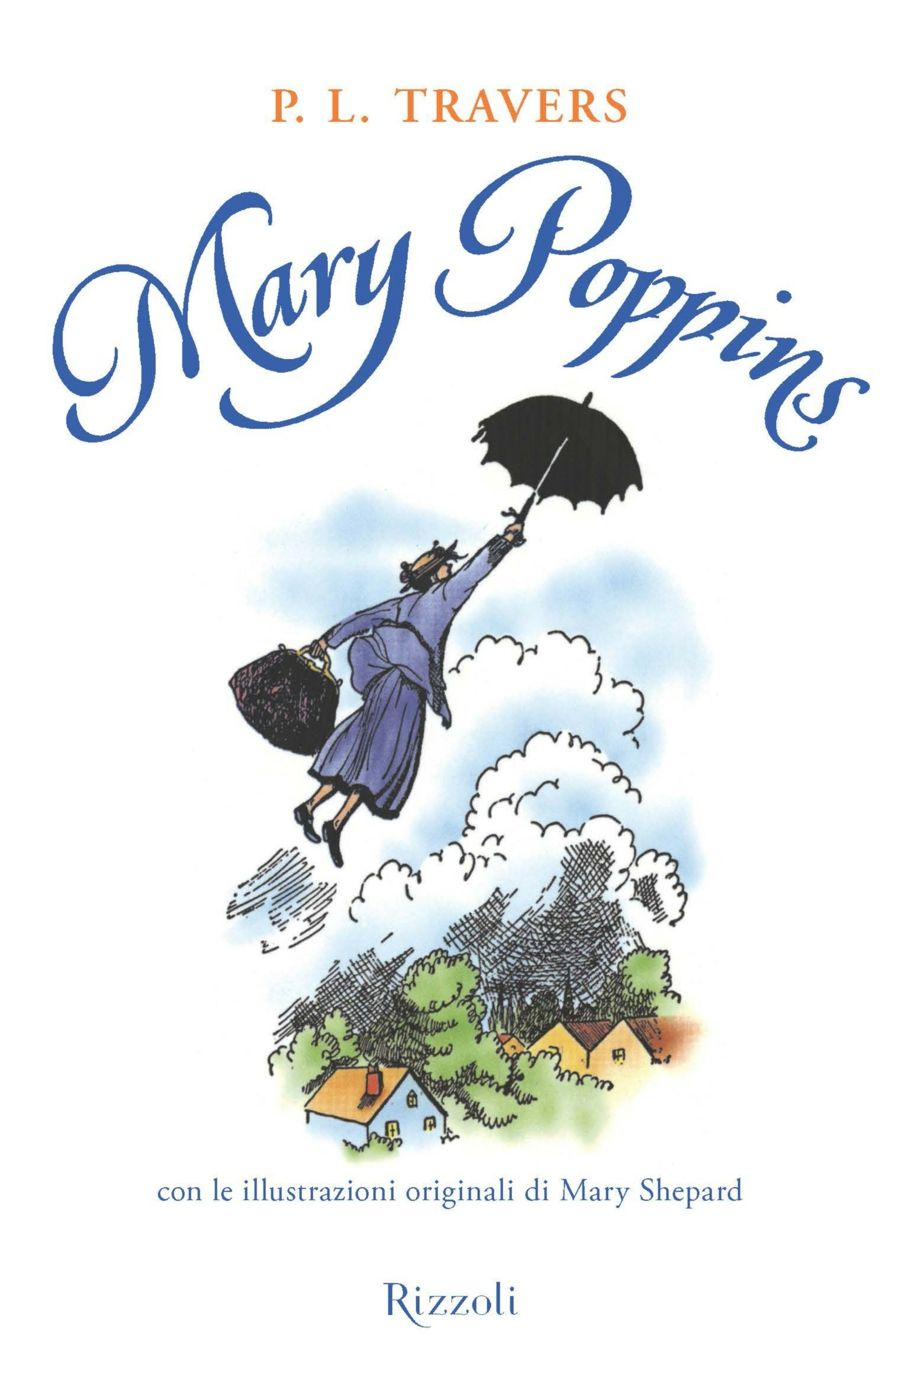 Mary Poppins von Pamela Lynwood Travers